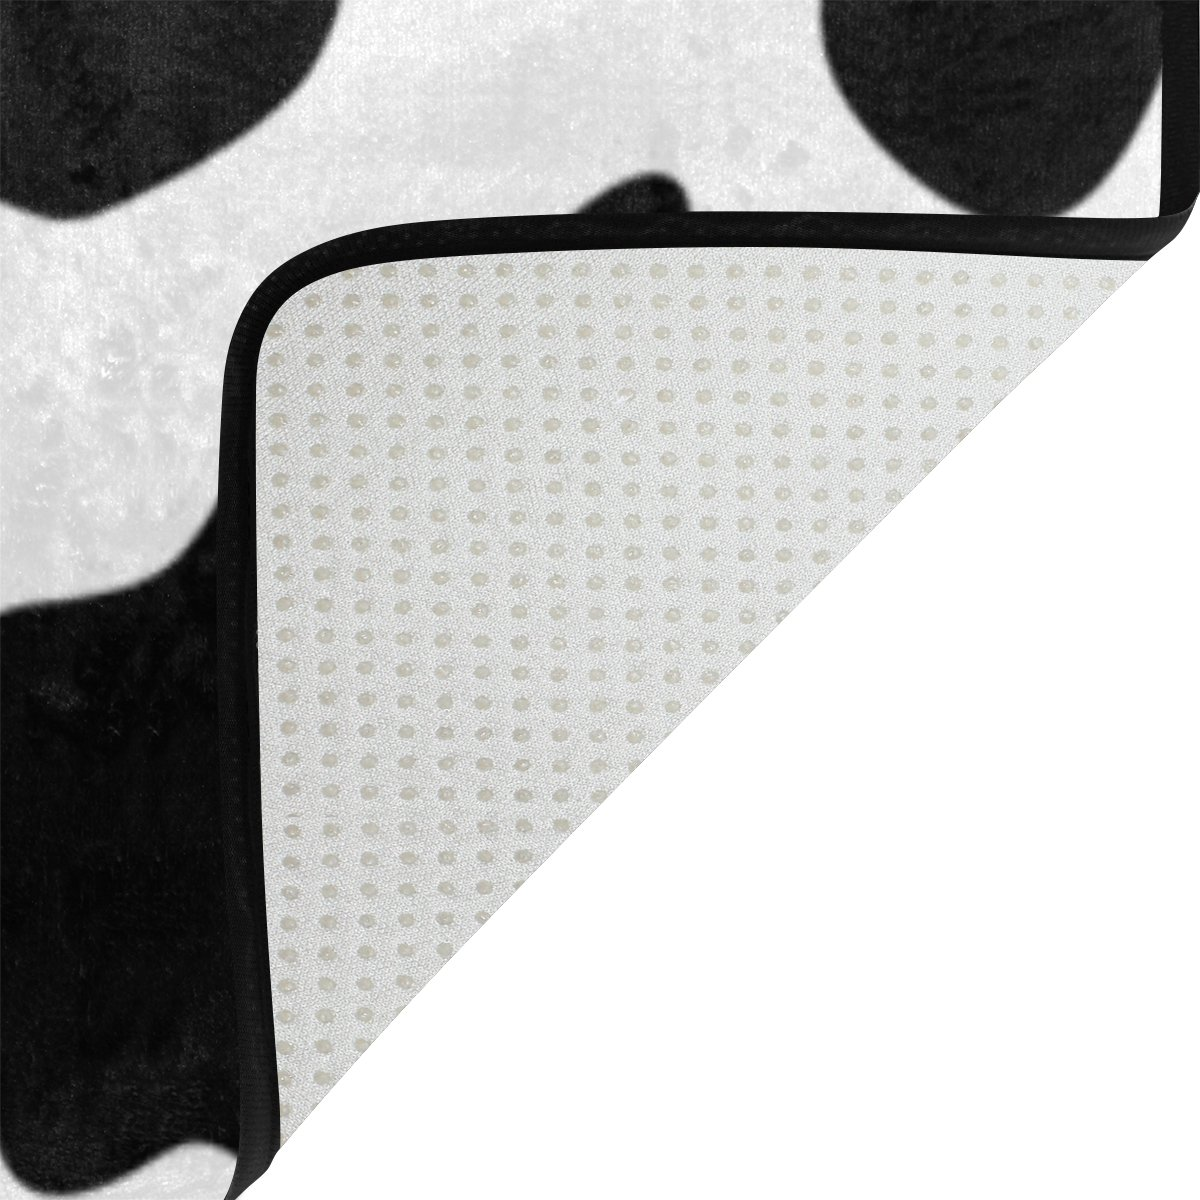 My Little Nest Black and White Cow Spot Kids Cartoon Area Rug 4'10'' x 6'8'' For Bedroom Dining Room Living Room Floor Mat Lightweight Carpet, Unique Anti Skid Indoor Outdoor Decor Soft Rug Carpets by My Little Nest (Image #4)